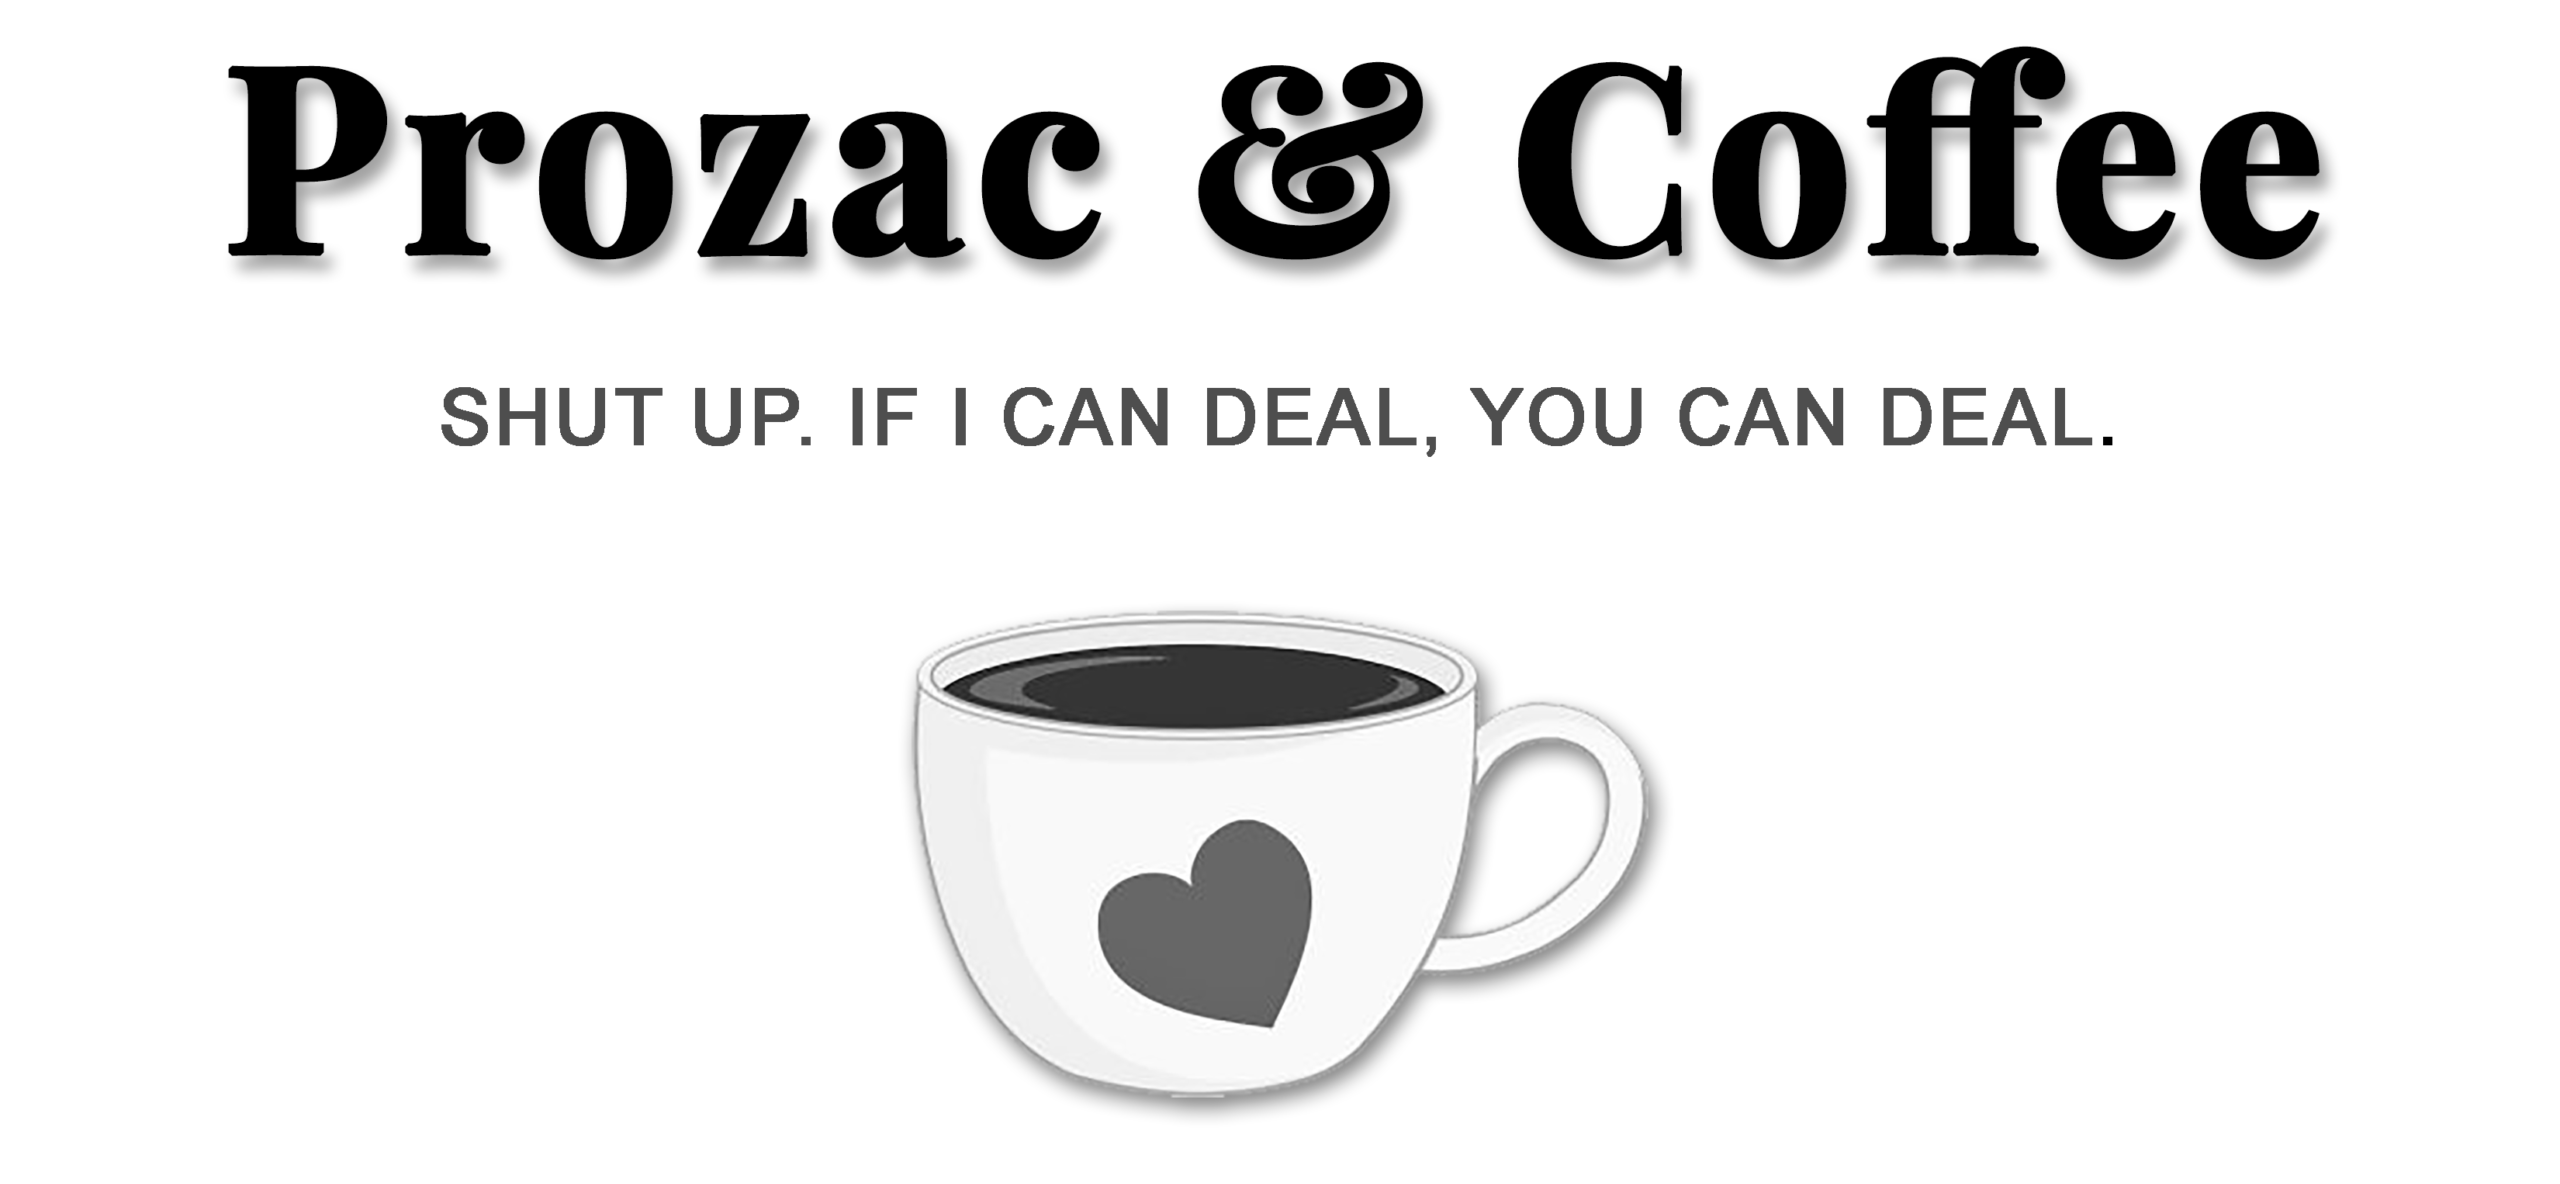 Prozac & Coffee